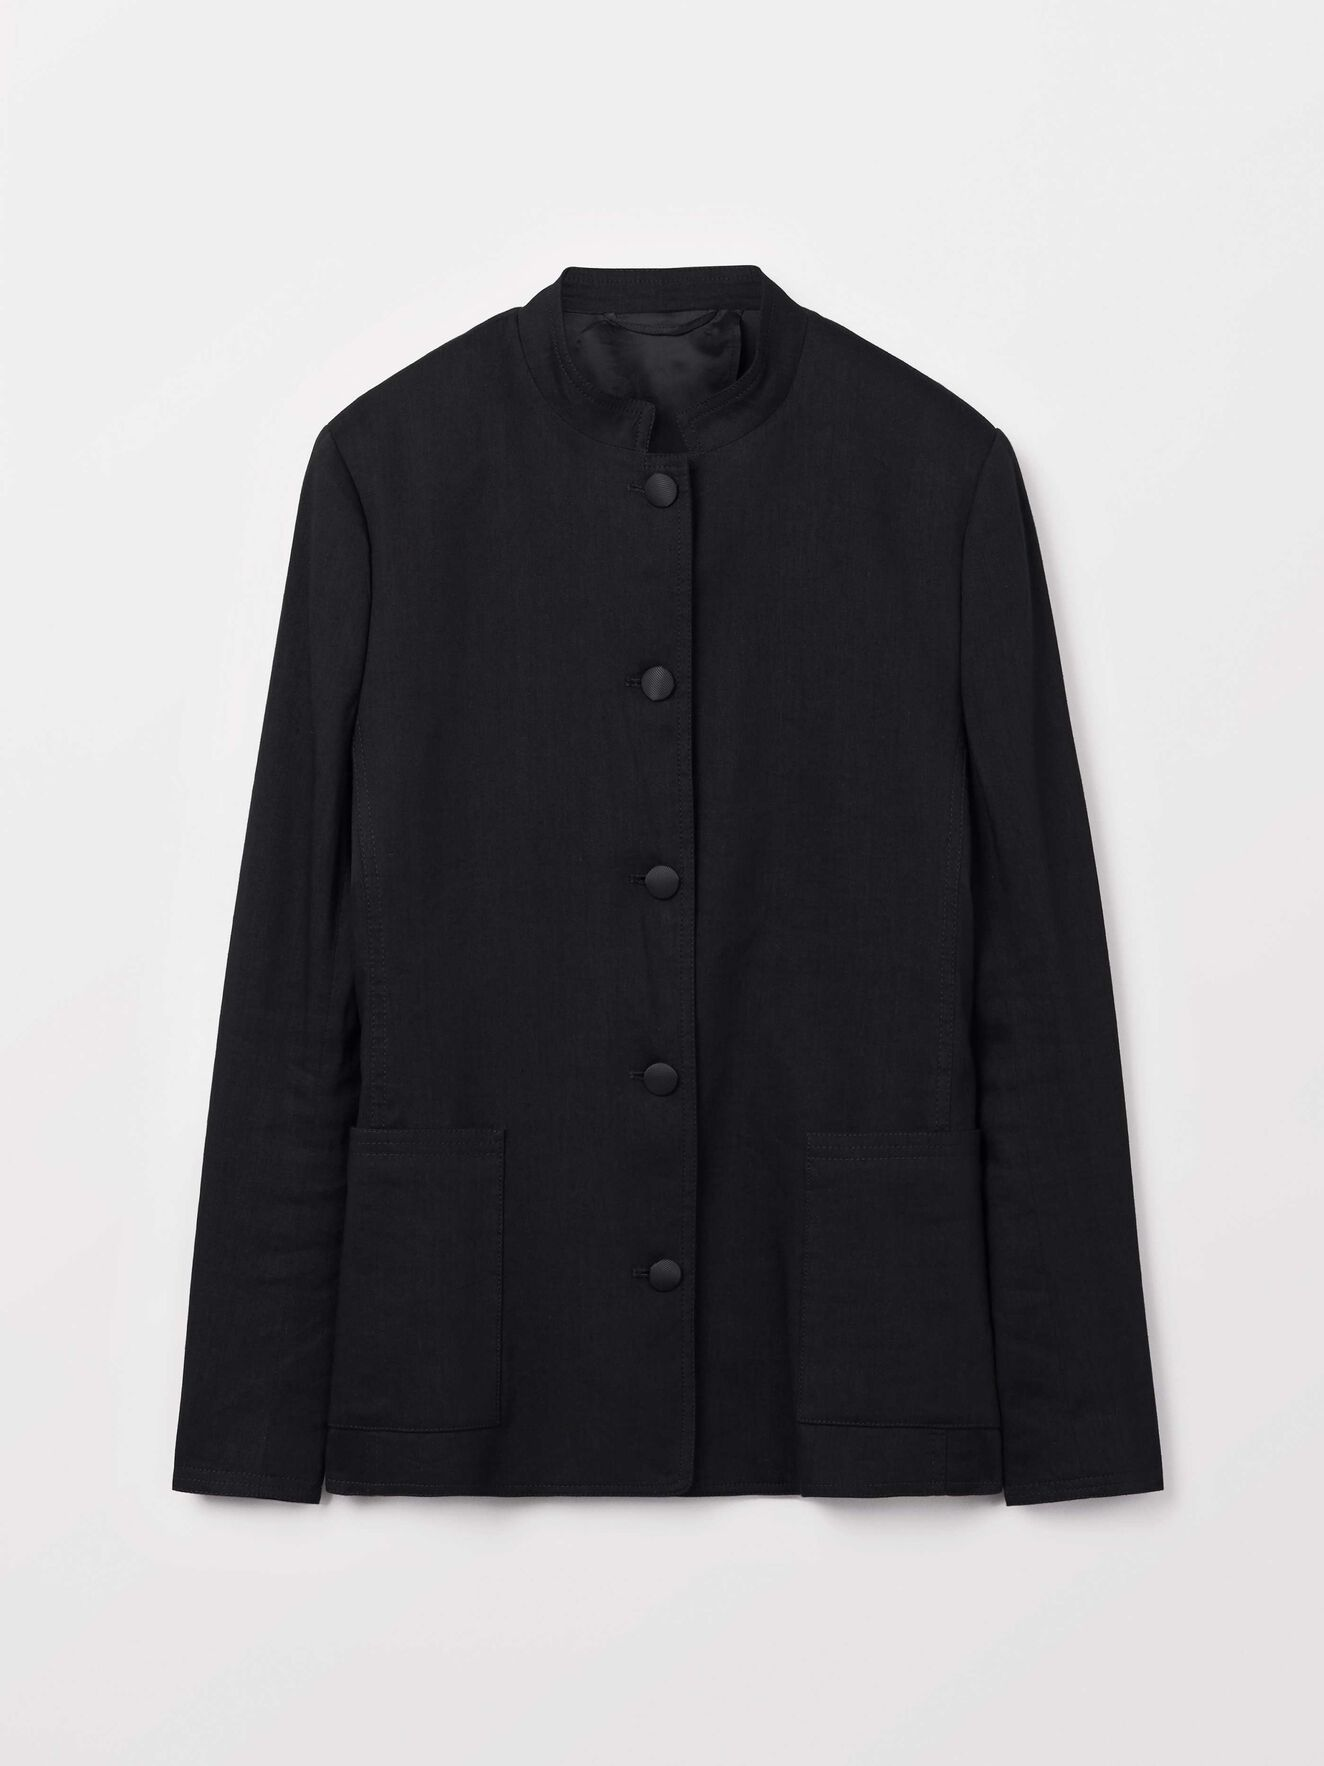 Yone Jacket in Black from Tiger of Sweden